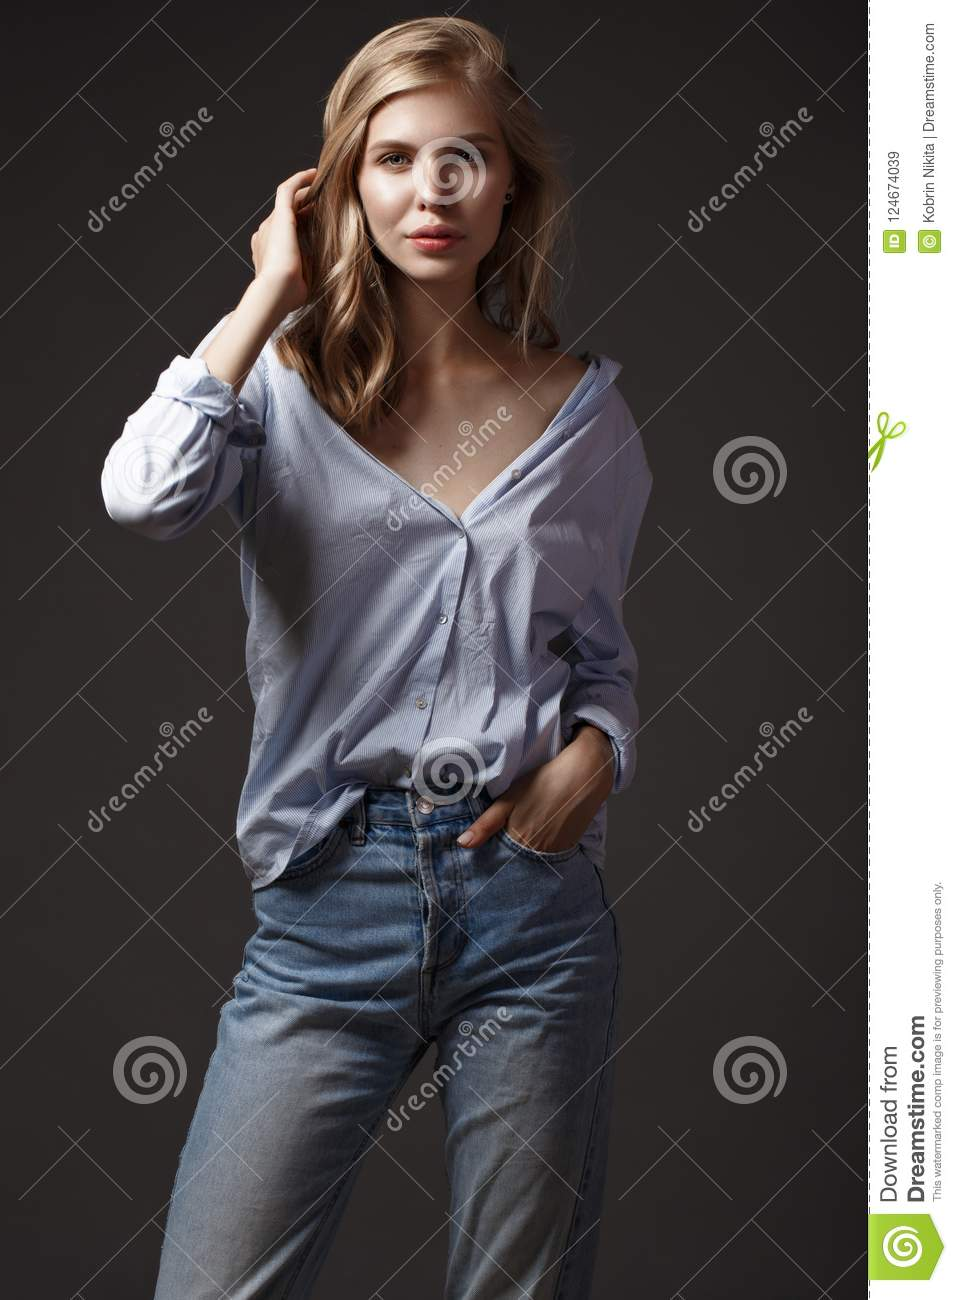 Fashion model with long hair, perfect skin is posing in studio for glamour test photo shoot showing different poses